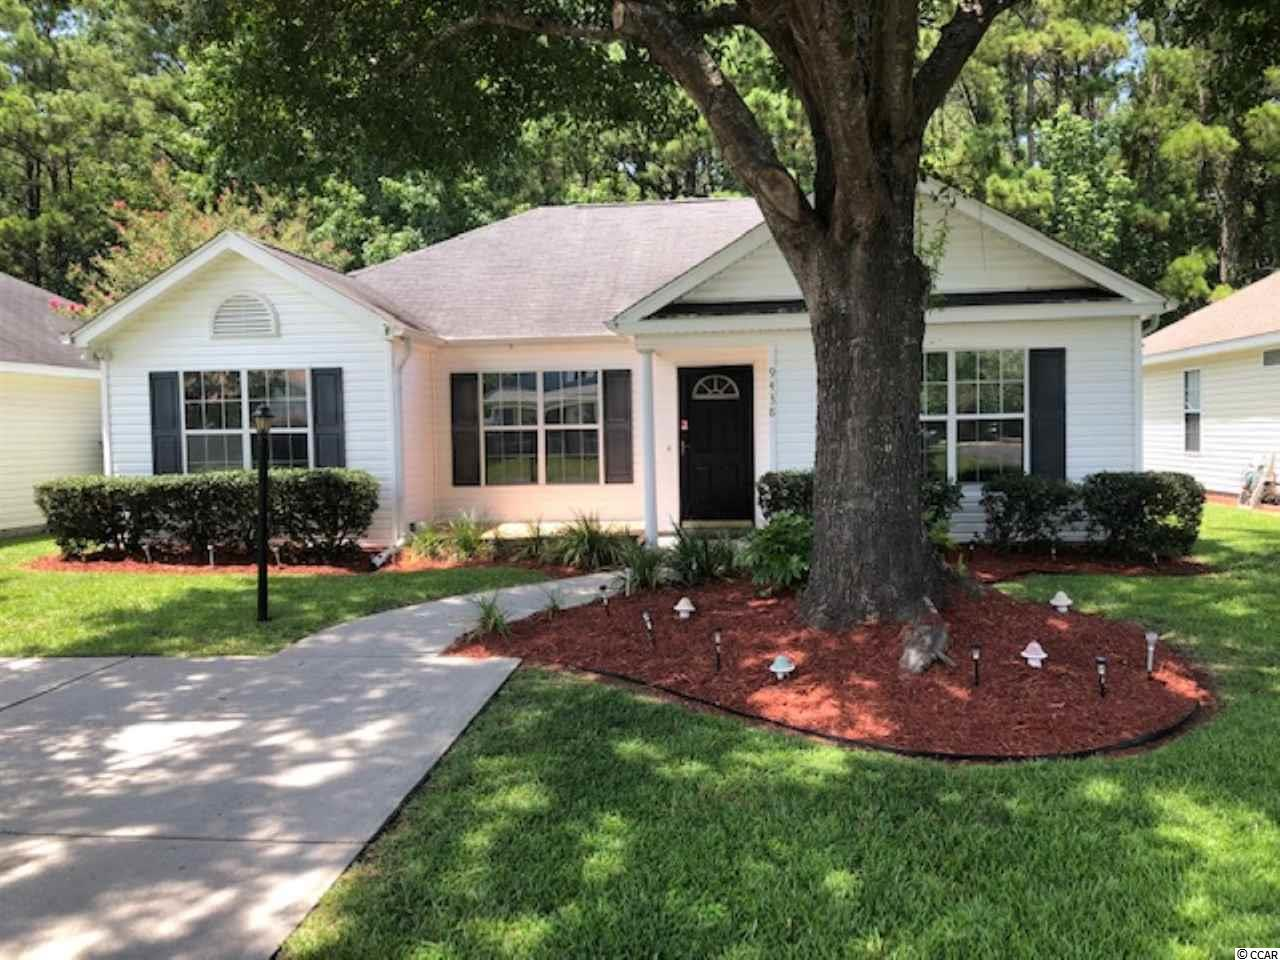 Homes rarely come on the market in this neighborhood and this 3 BR/ 2 BA home in the award-winning St. James school district is move-in ready and priced to sell quickly. Come see this ranch style home close to everything Myrtle Beach has to offer, plus just a 10 minute ride to the beach. Open floor plan, private back yard, surrounded by trees, beautiful shade trees and great curb appeal. Make this home one you can't pass up.